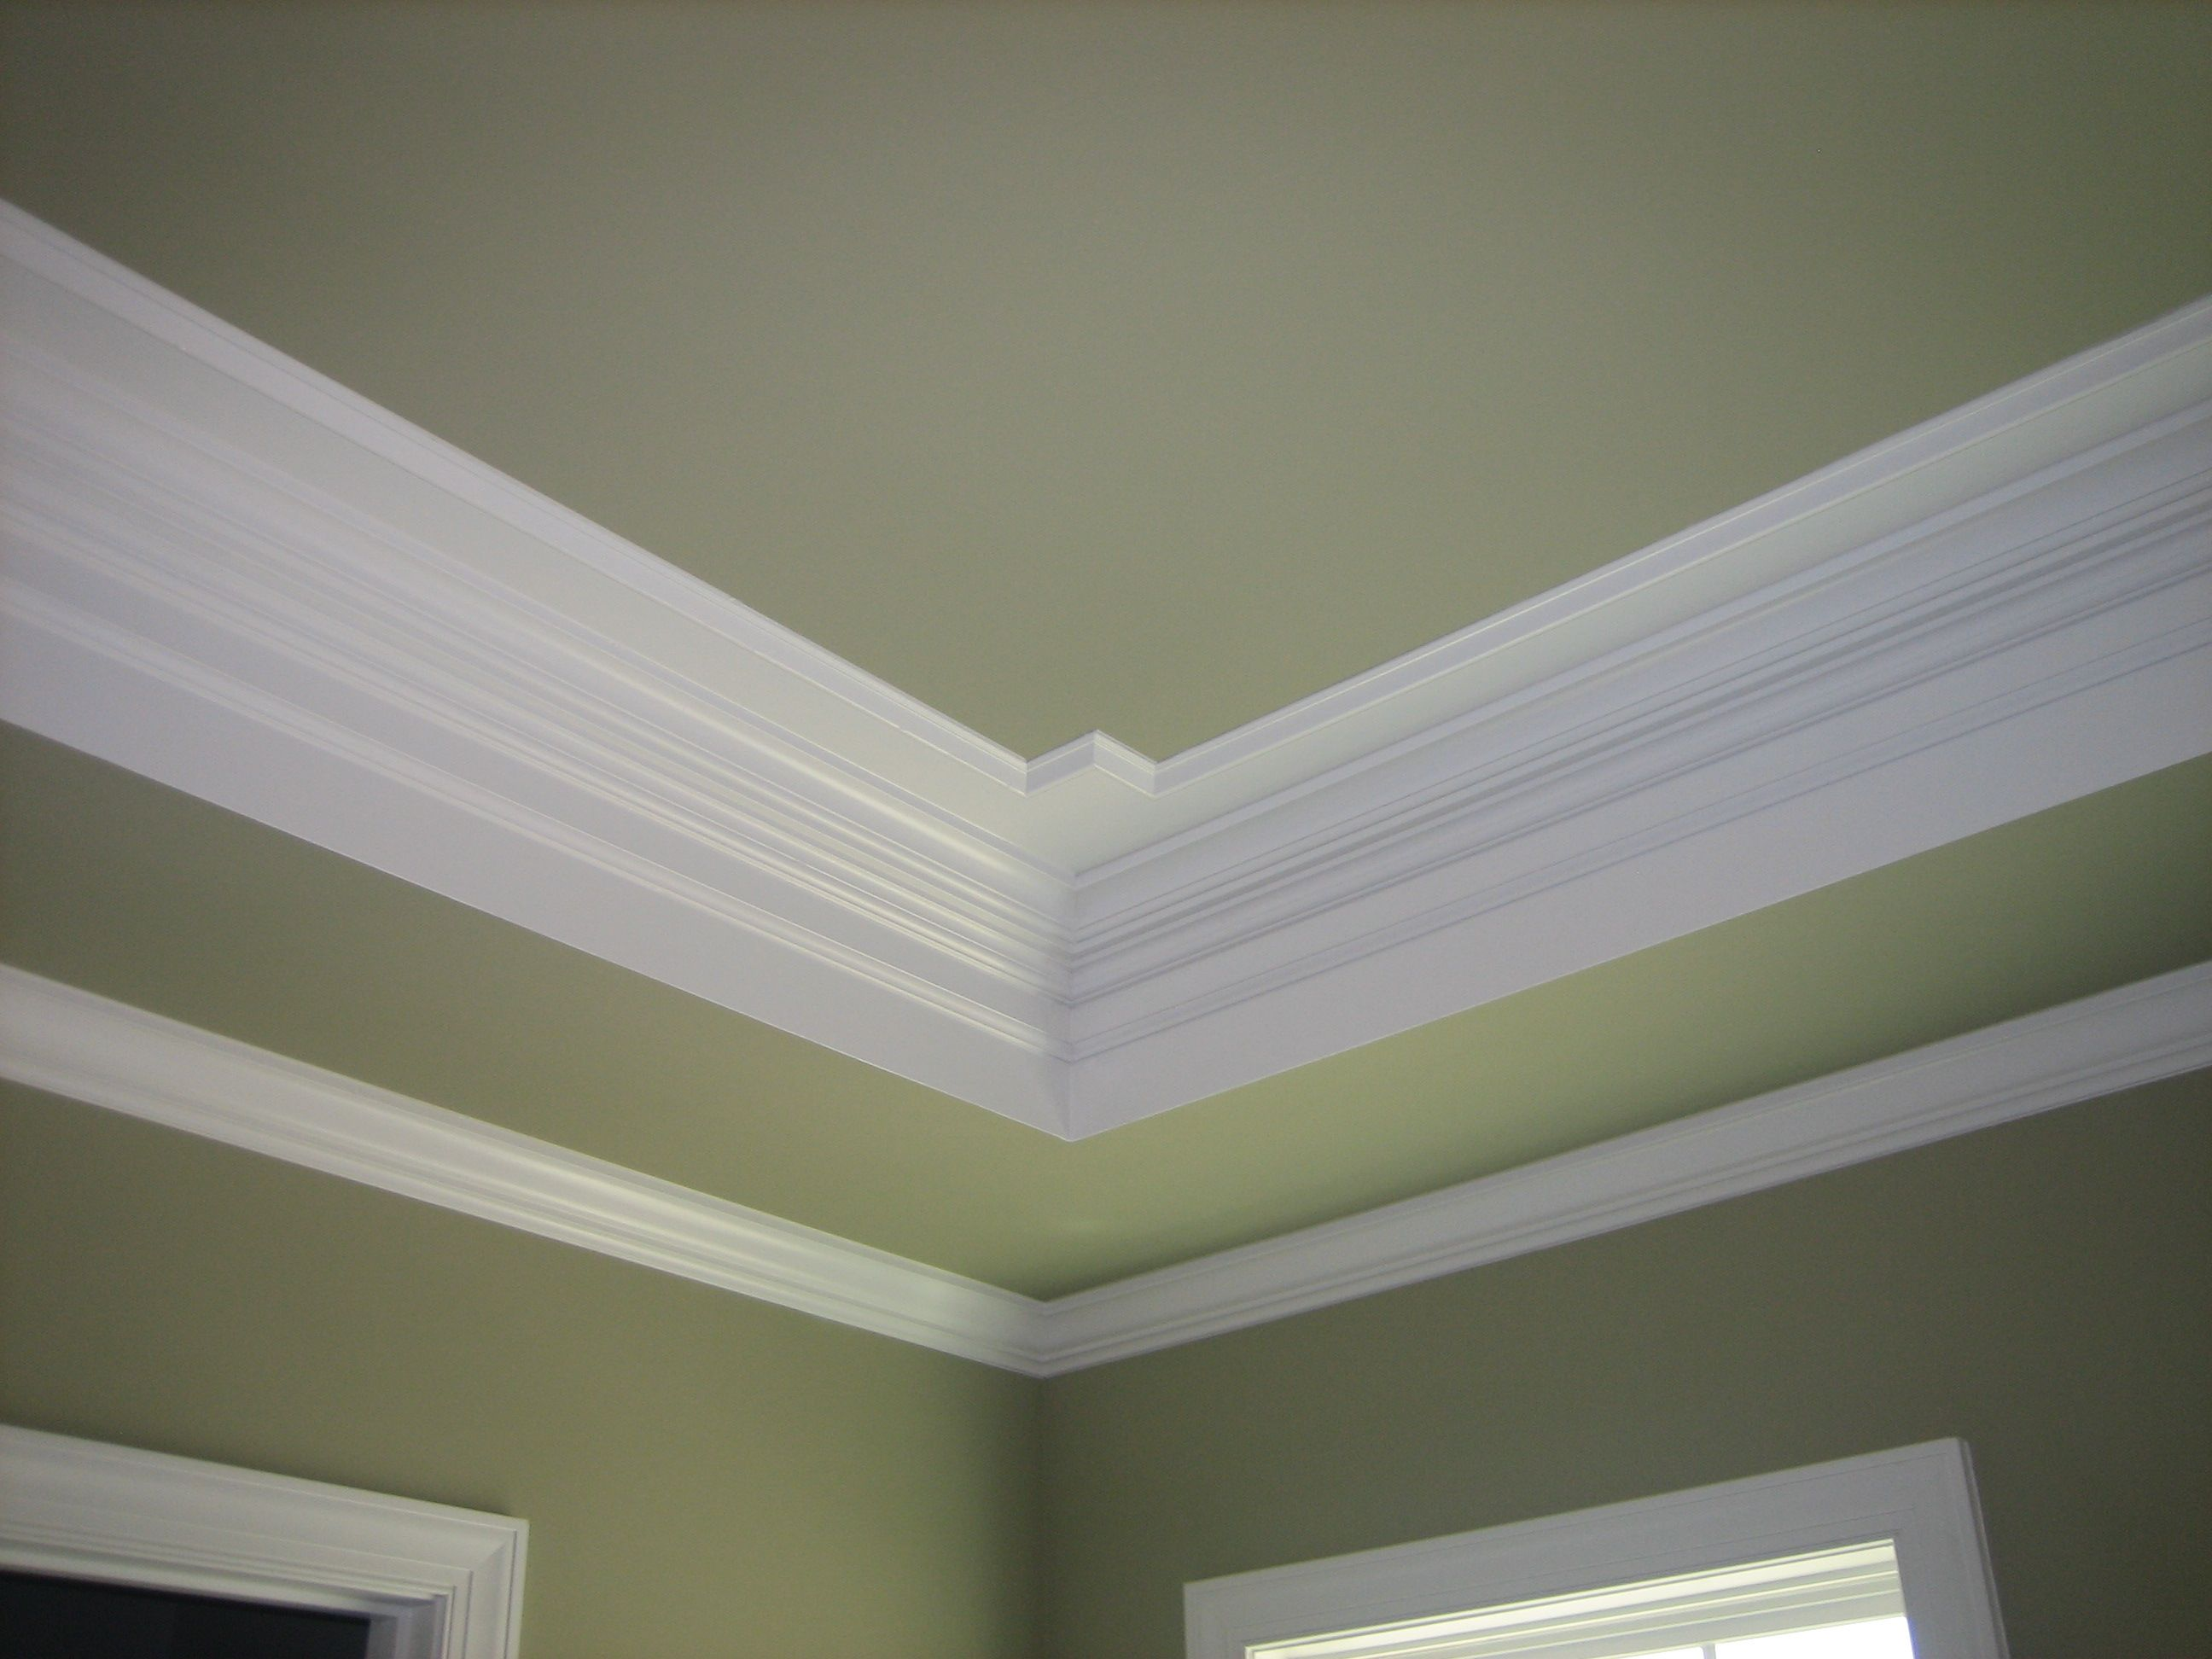 tray ceilings with crown molding crown molding ceiling molding design ideas - Ceiling Molding Design Ideas